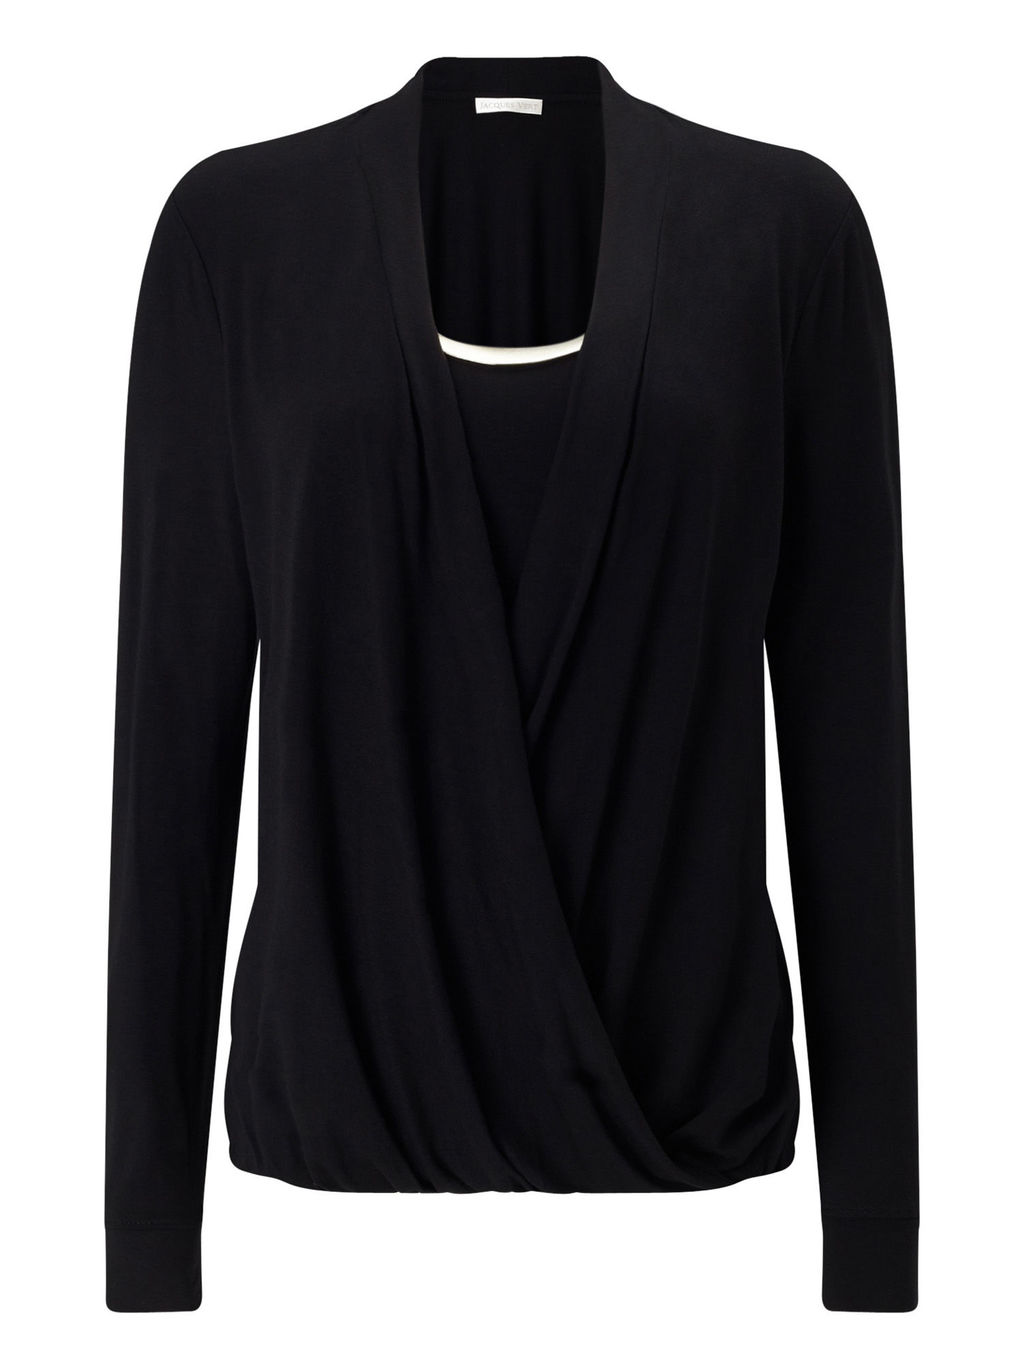 Jersey Drape Trim Top - neckline: cowl/draped neck; pattern: plain; predominant colour: black; occasions: evening, creative work; length: standard; style: top; fibres: polyester/polyamide - stretch; fit: body skimming; sleeve length: long sleeve; sleeve style: standard; pattern type: fabric; pattern size: standard; texture group: jersey - stretchy/drapey; wardrobe: basic; season: a/w 2016